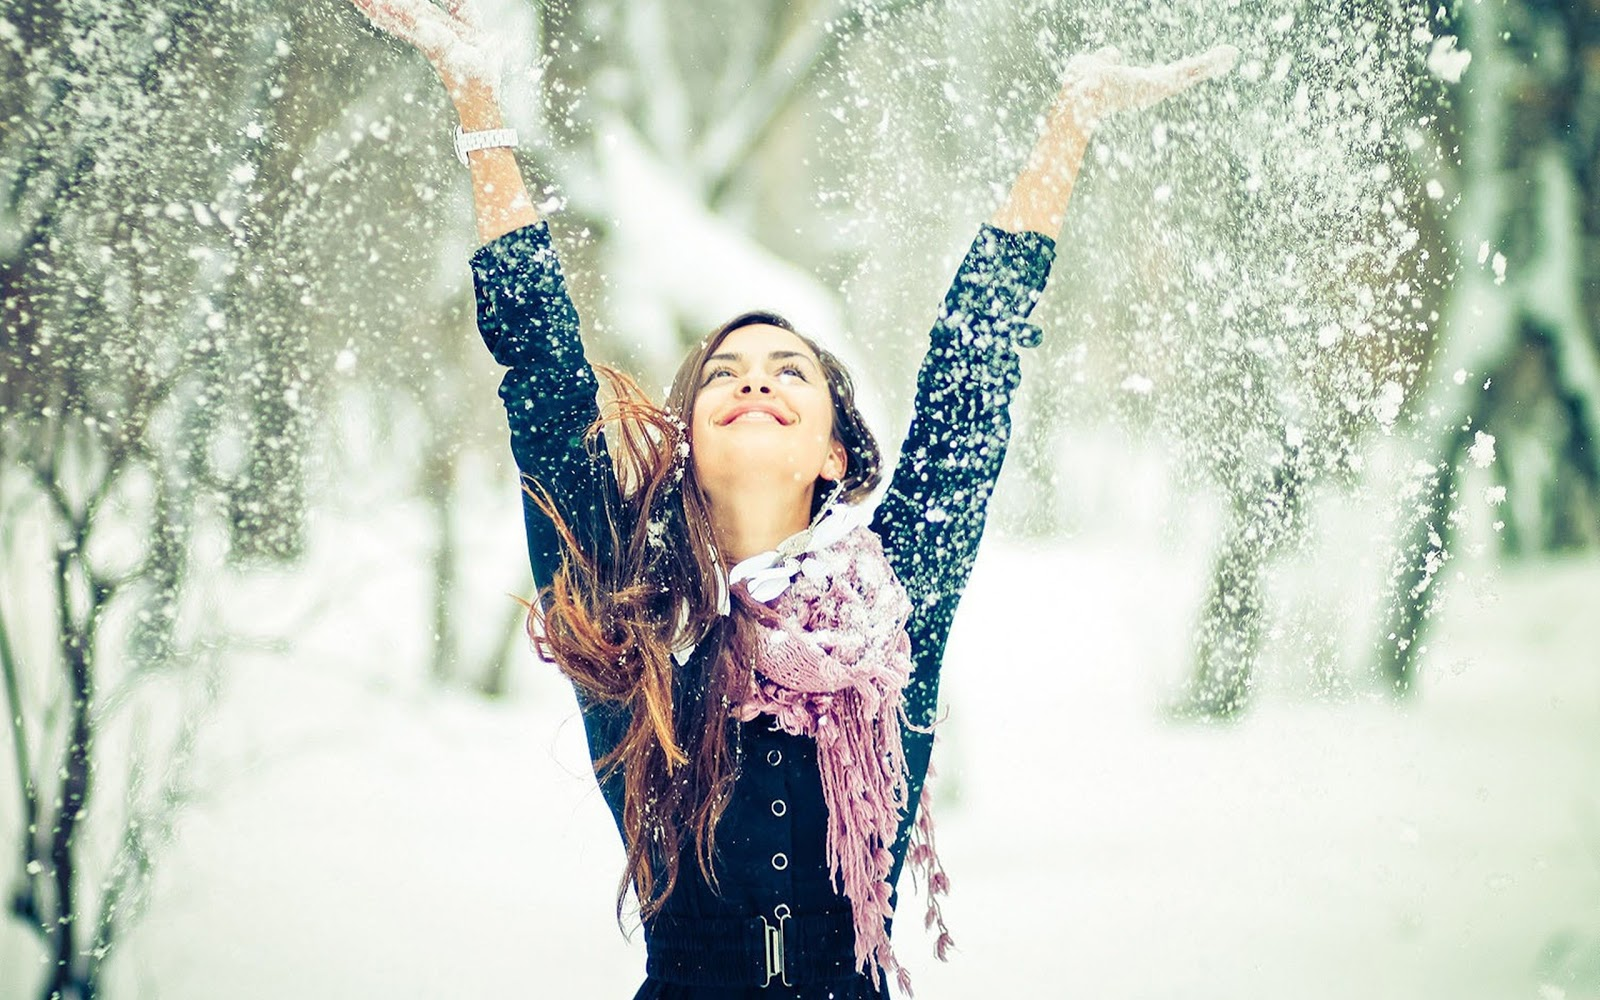 http://4.bp.blogspot.com/-2lVNIEhNfCY/UP2scJlgznI/AAAAAAAAHtg/Tab8XUJ5WqI/s1600/happy-girl-winter-snow-snowflakes-pao-wallpaper-2560x1600.jpg